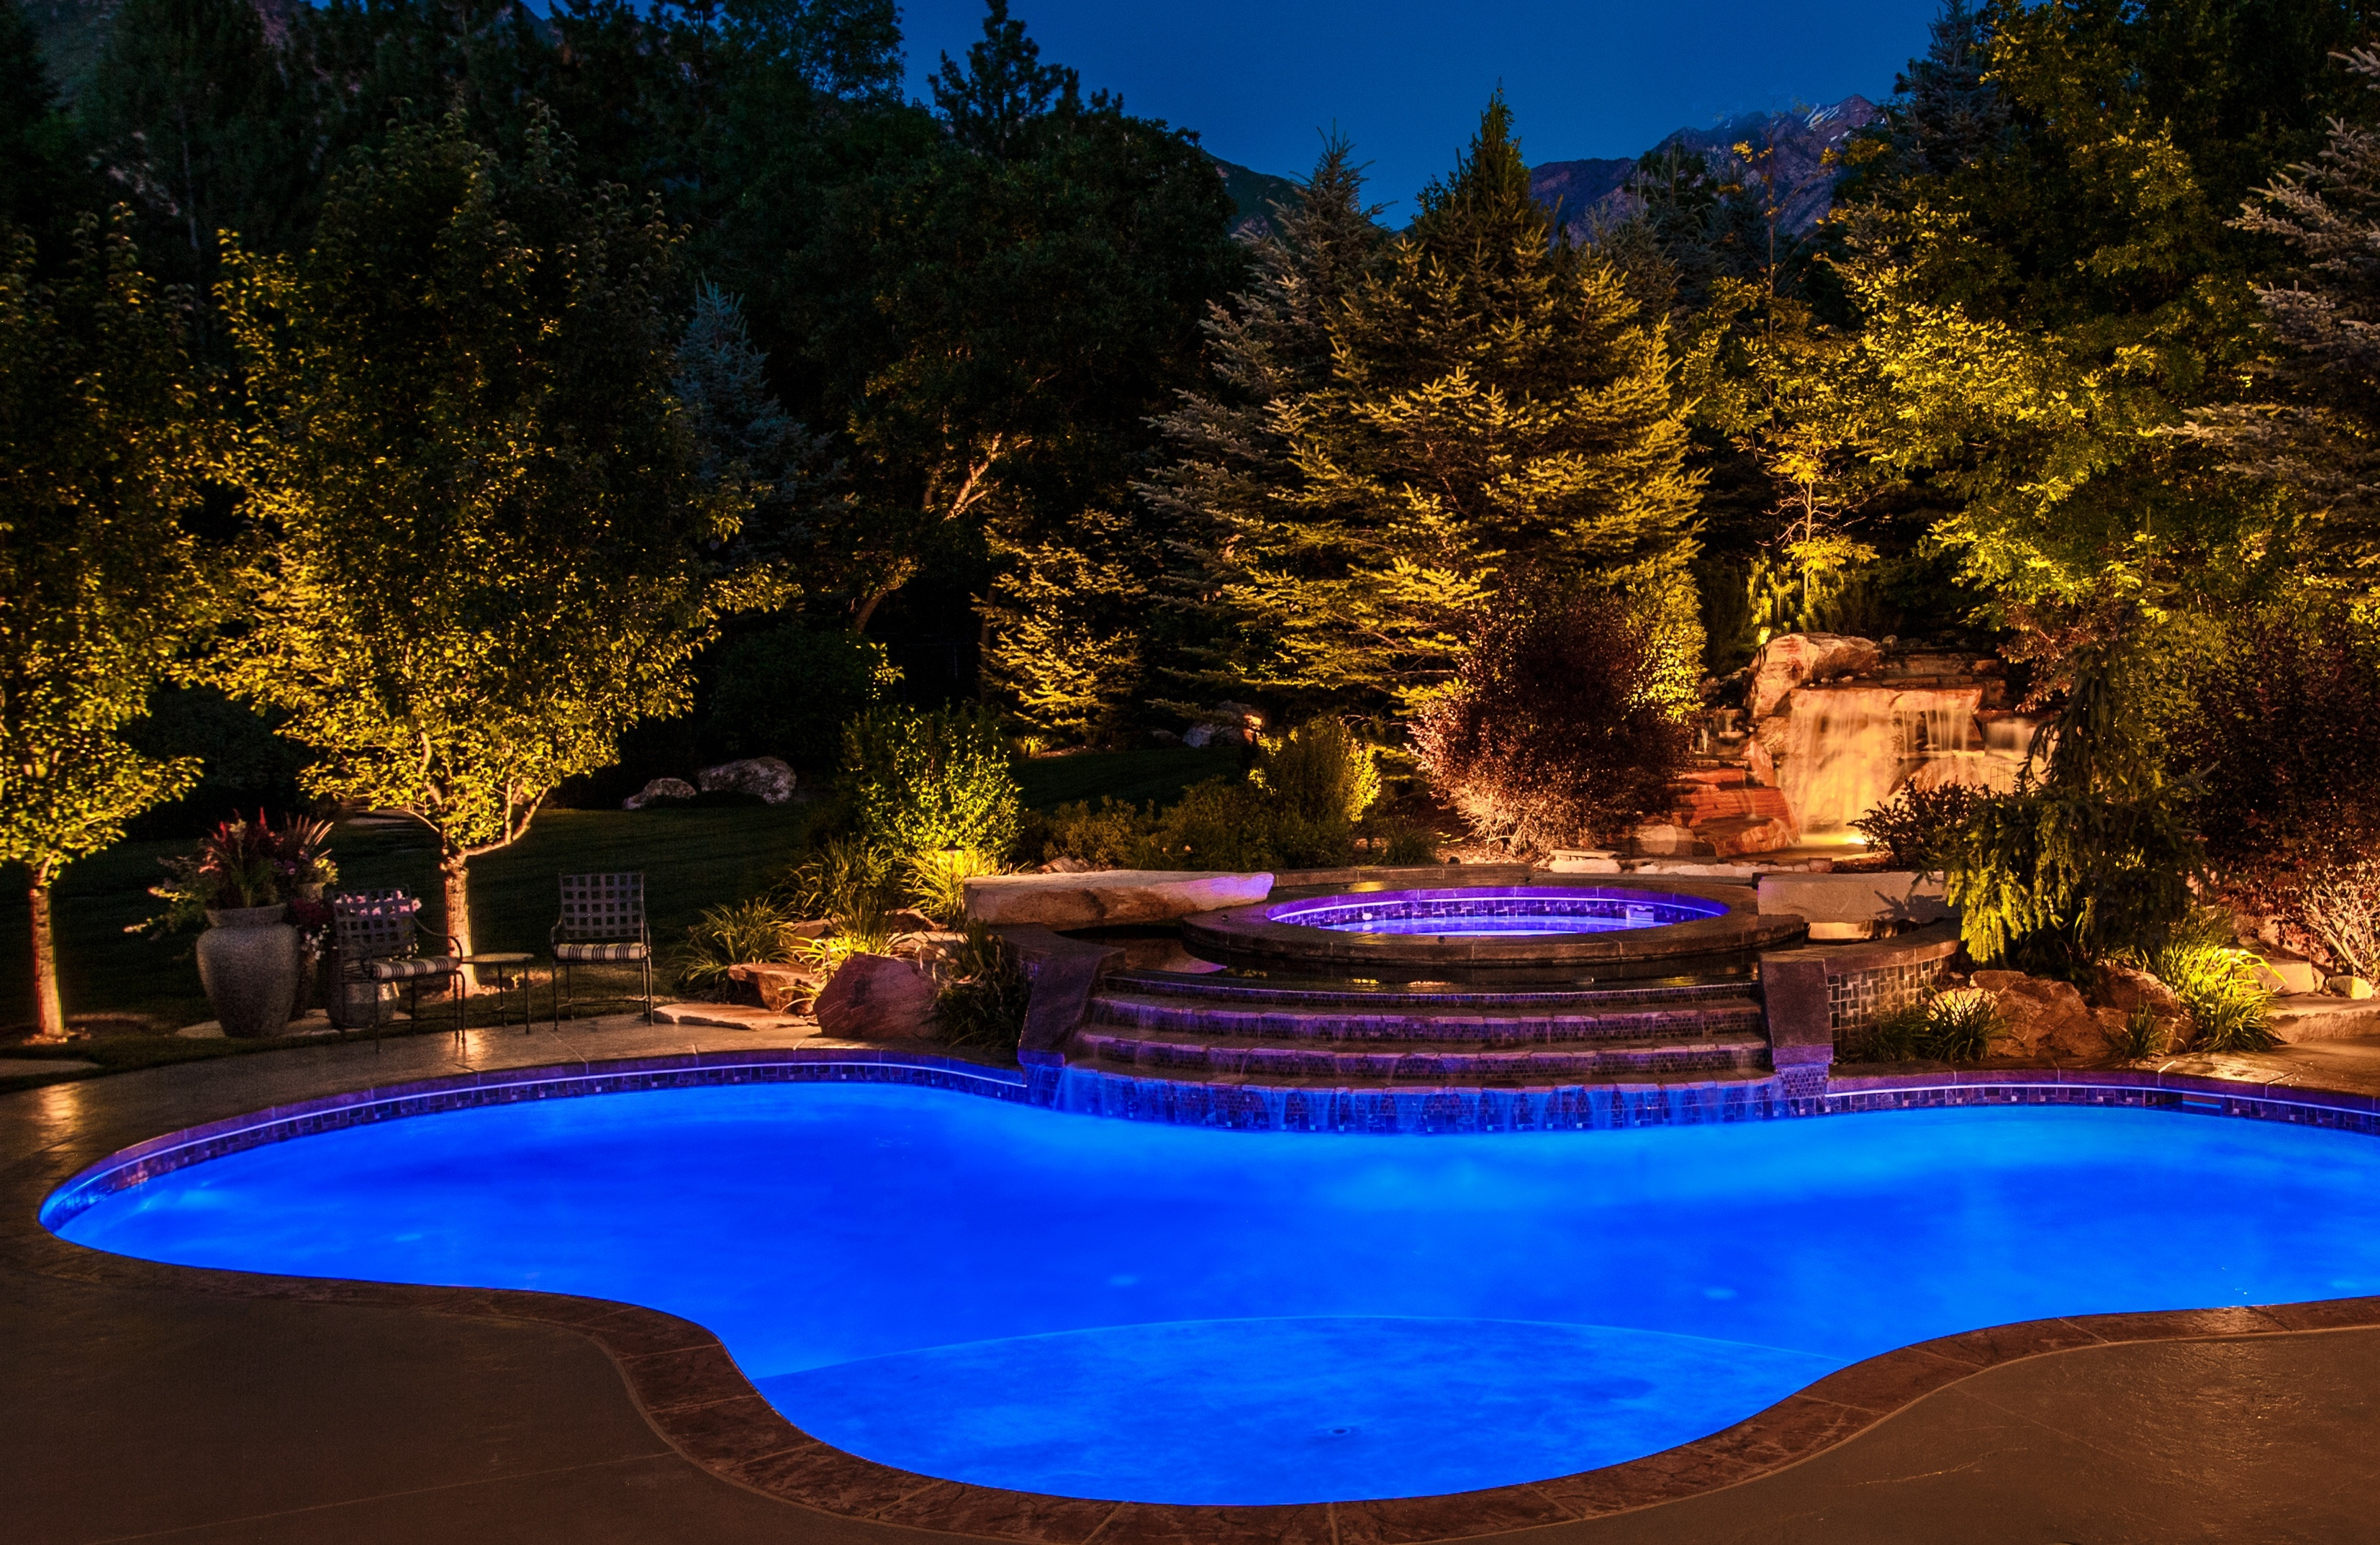 Pool Lighting Ideas.jpg